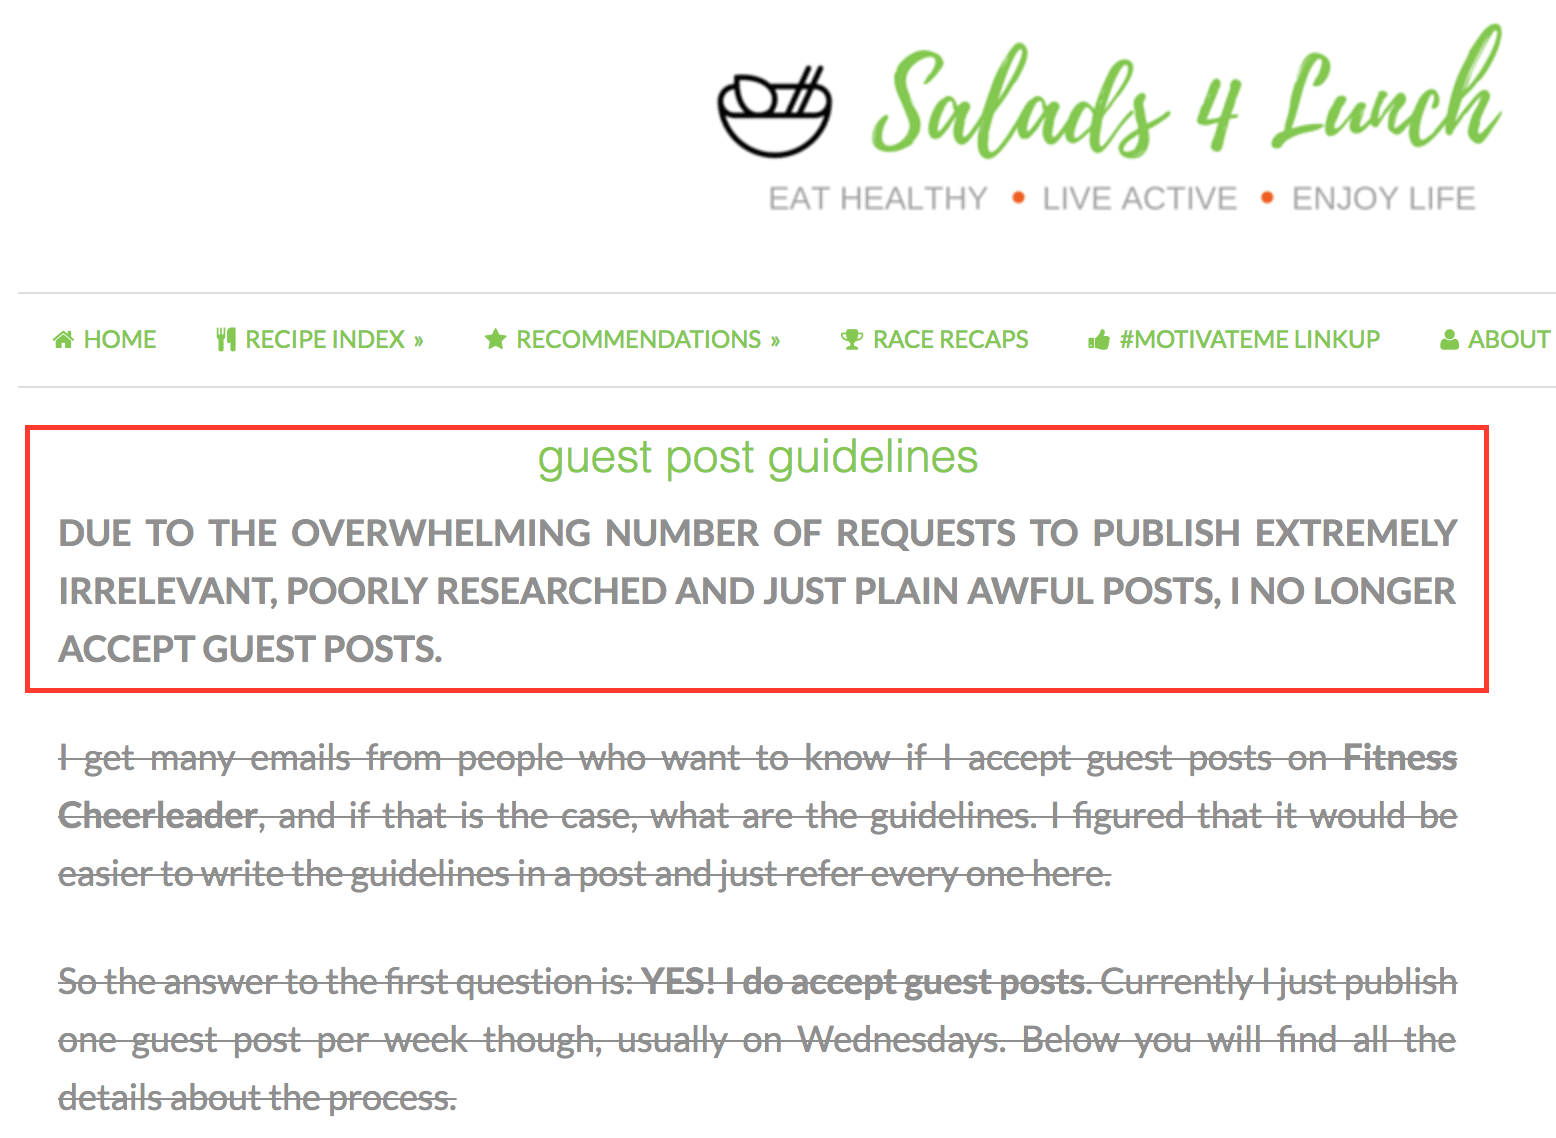 Salads 4 lunch guest post guidelines